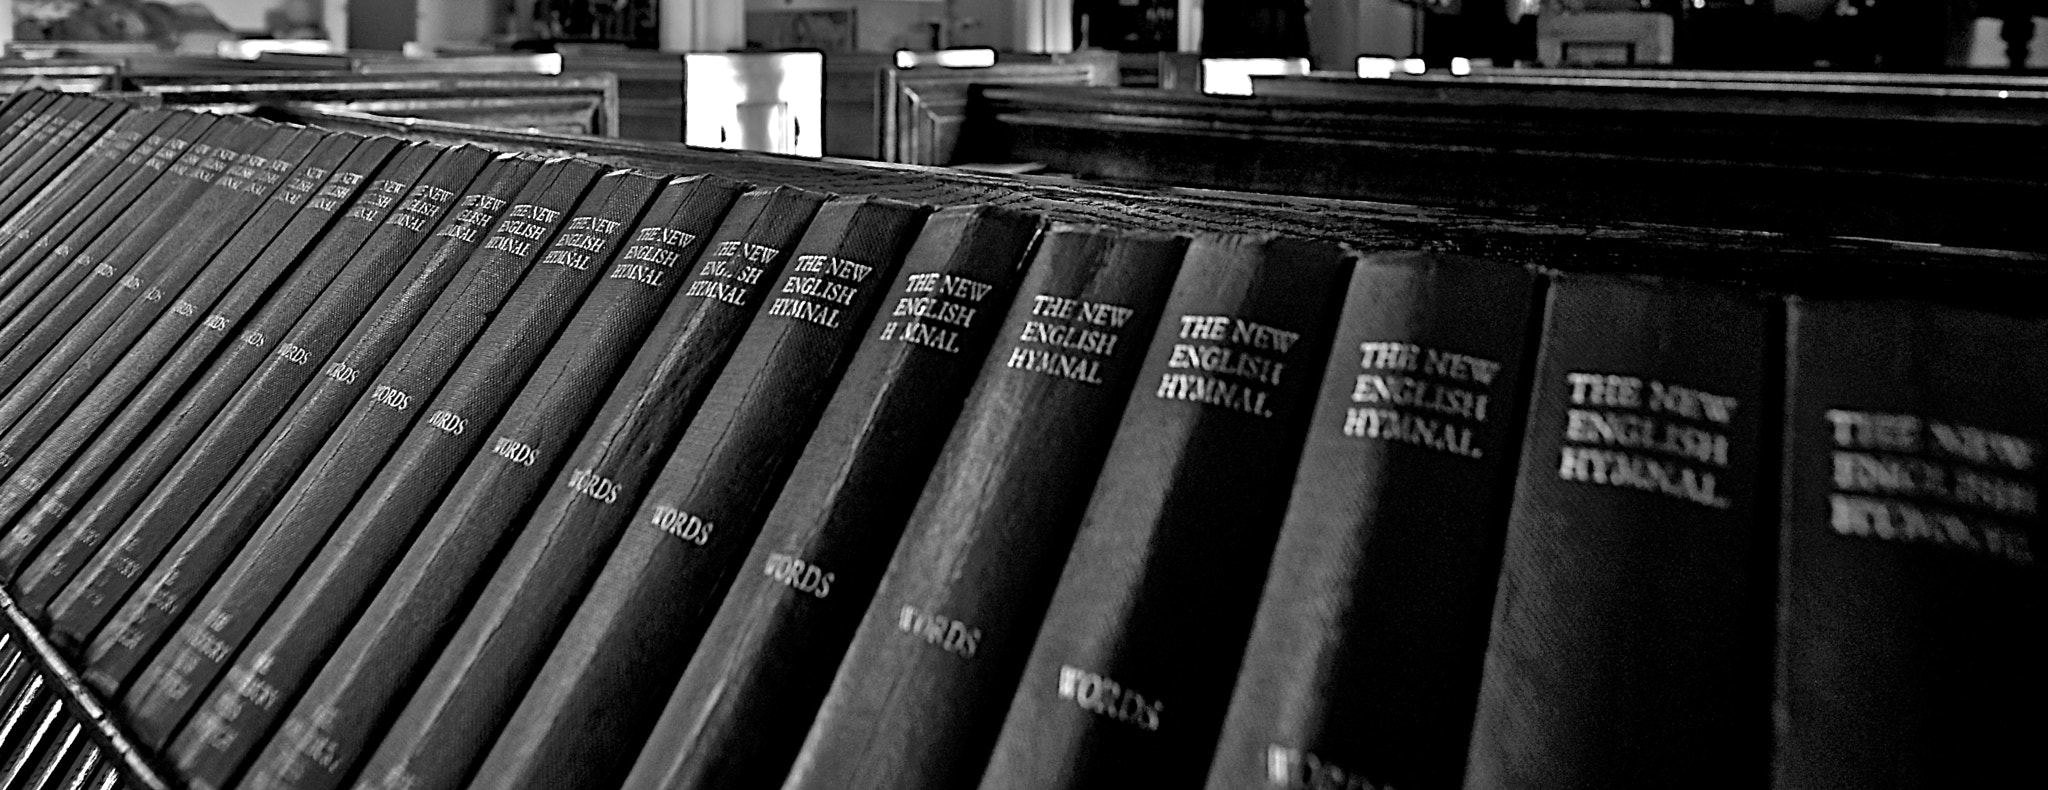 Photograph The New English Hymnal by Steve Lewis  on 500px